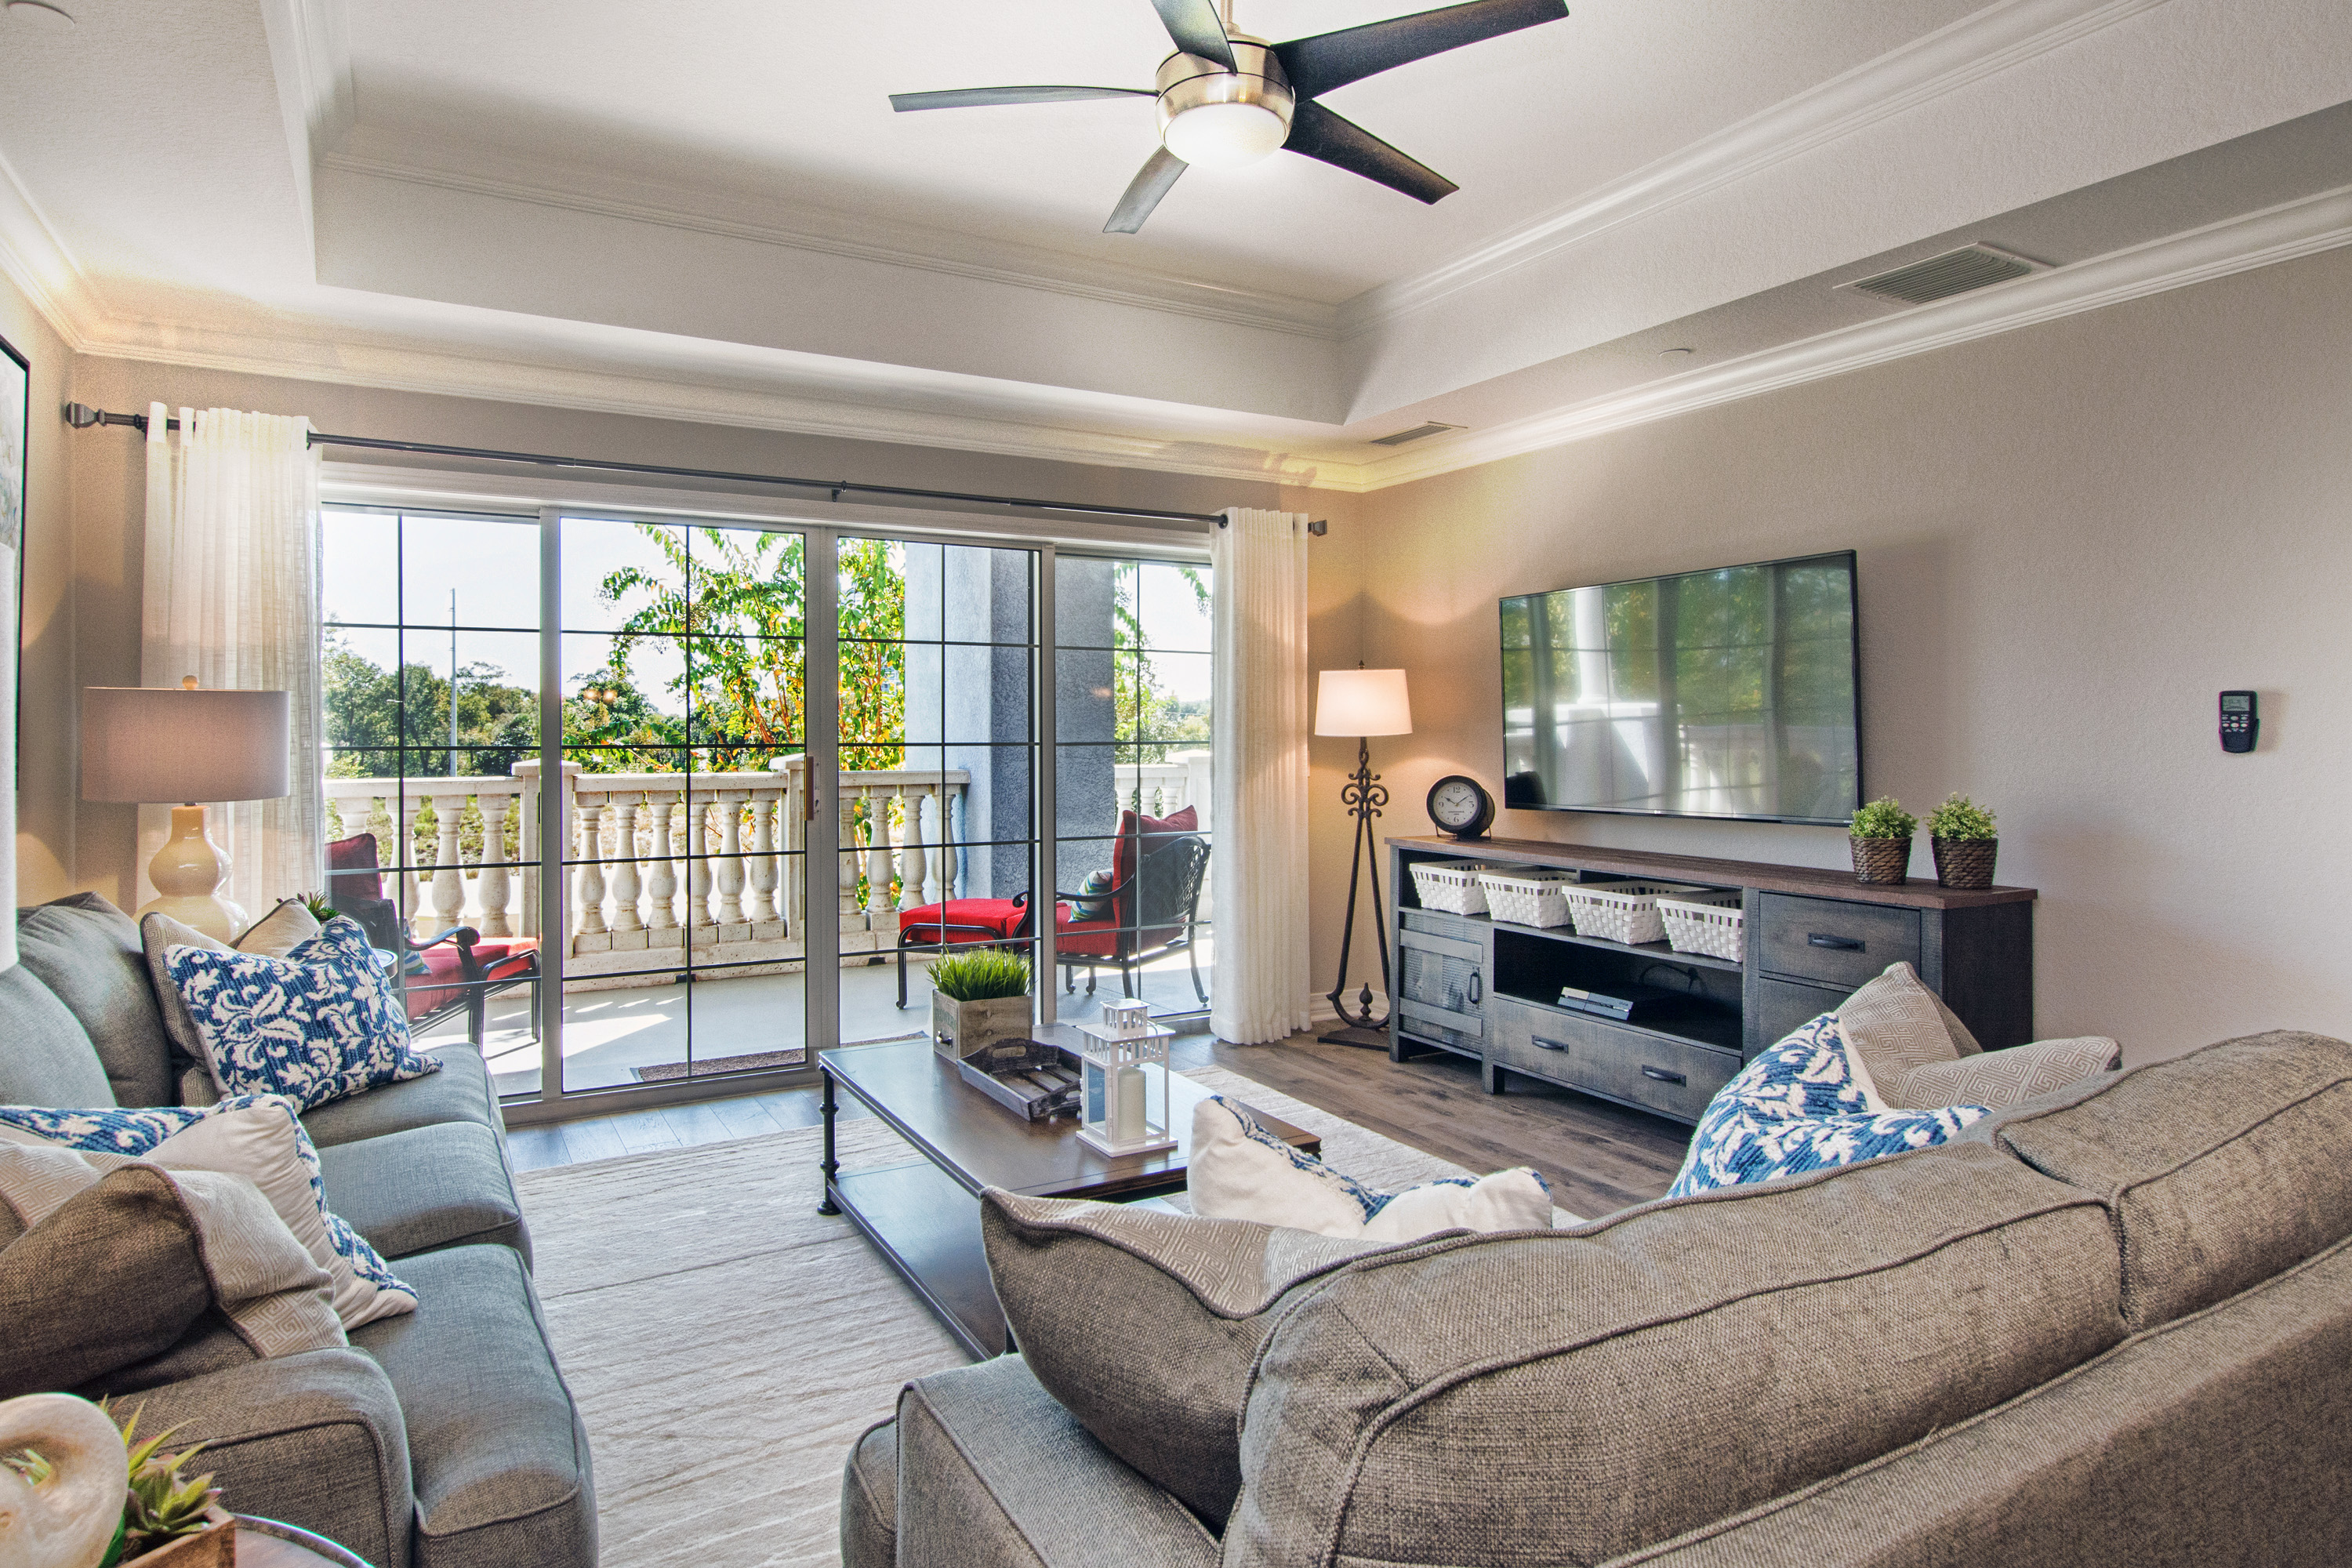 Genial Cabana Joia   Luxury Condo With New Furniture October 2015 Vacation Rental  In Kissimmee   RedAwning